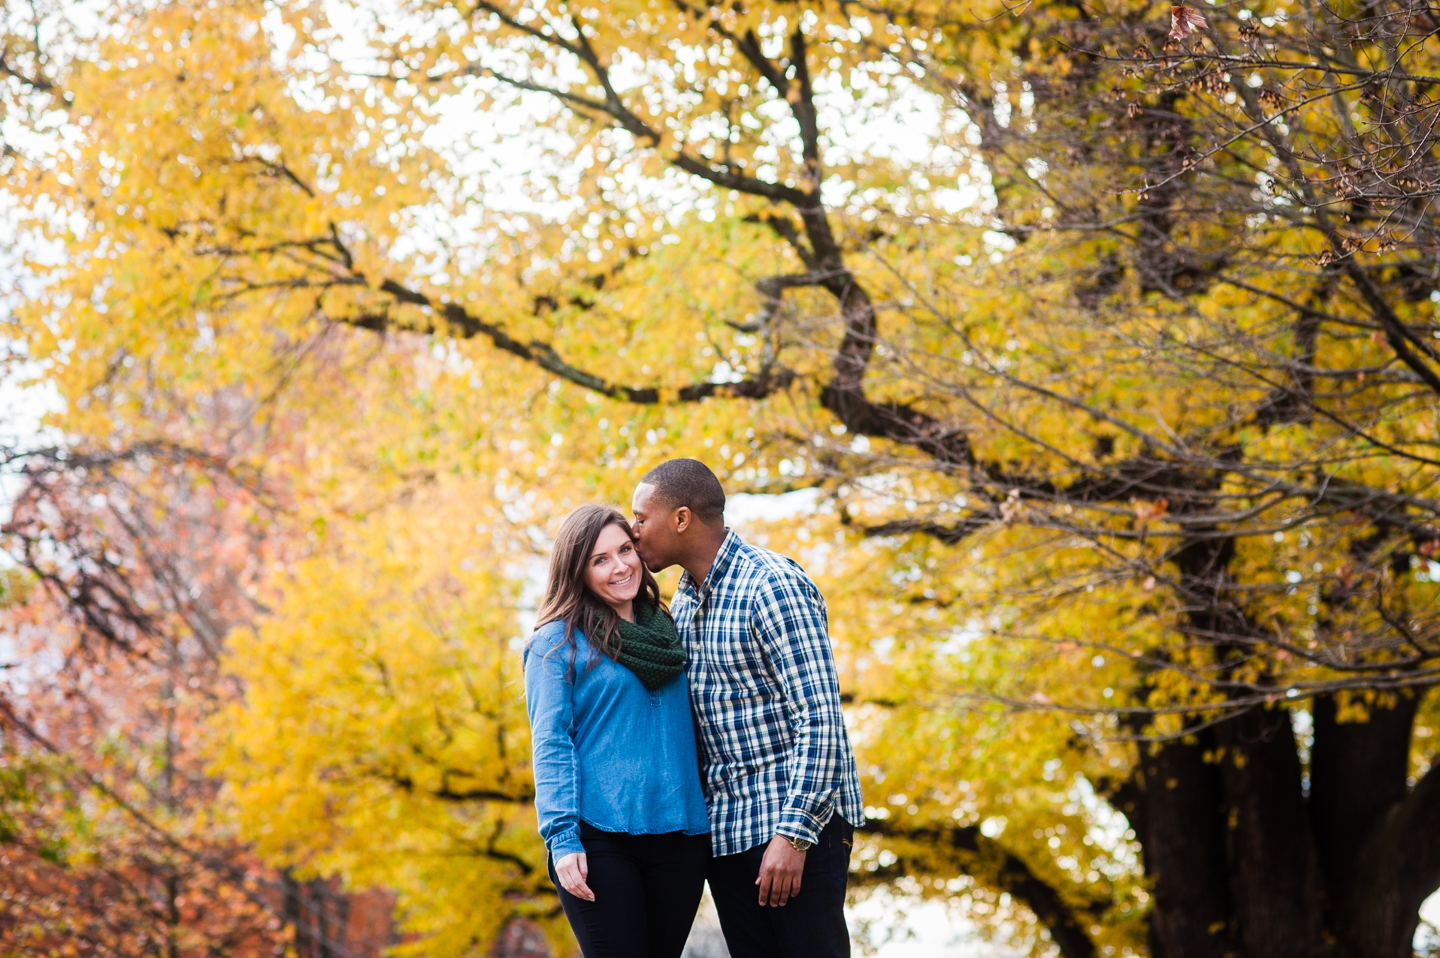 fiance gives his bride to be a kiss on the cheek in front of a gorgeous yellow maple tree